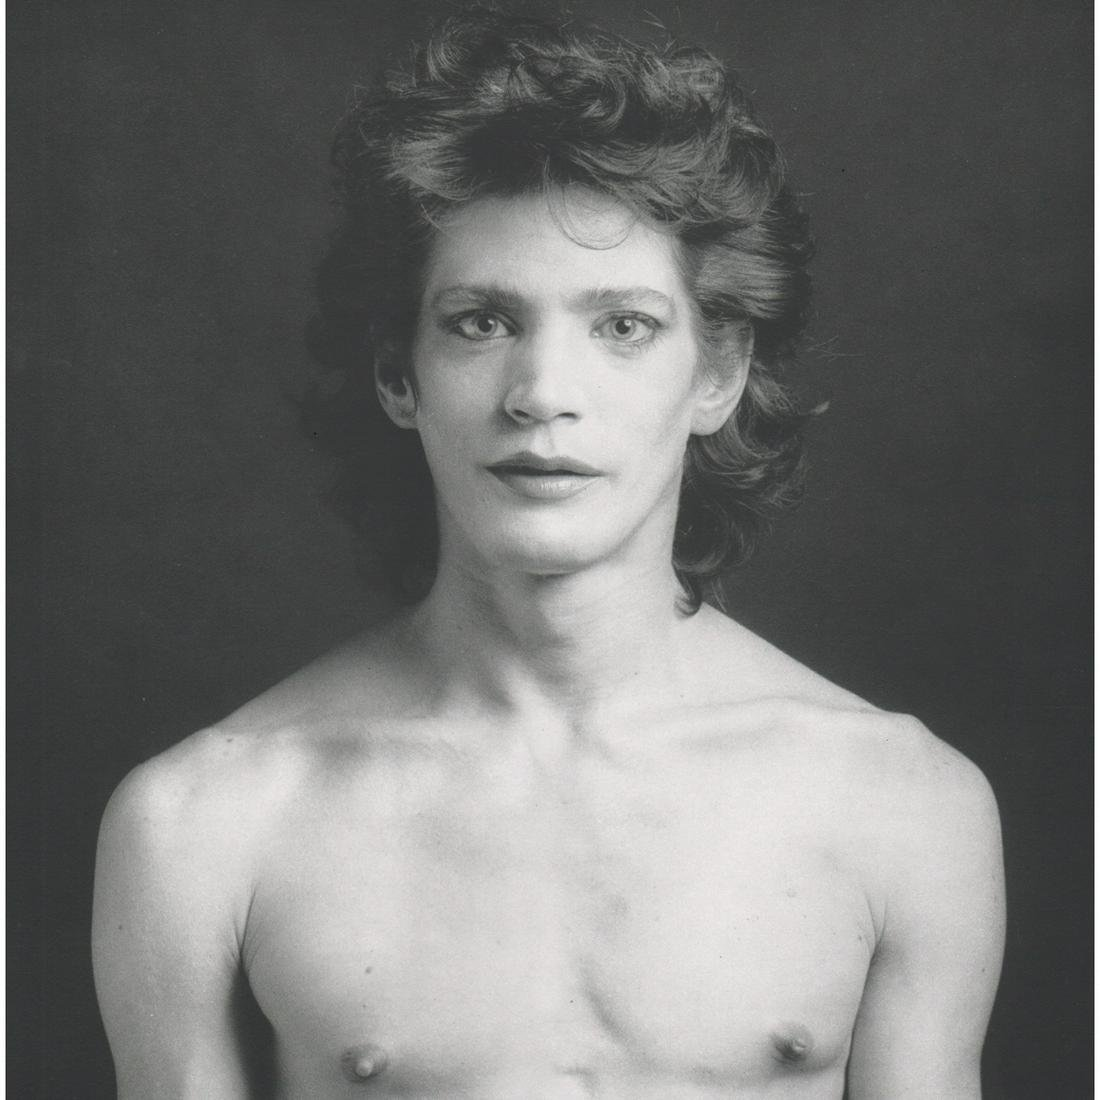 ROBERT MAPPLETHORPE - Robert Mapplethorpe, 1980